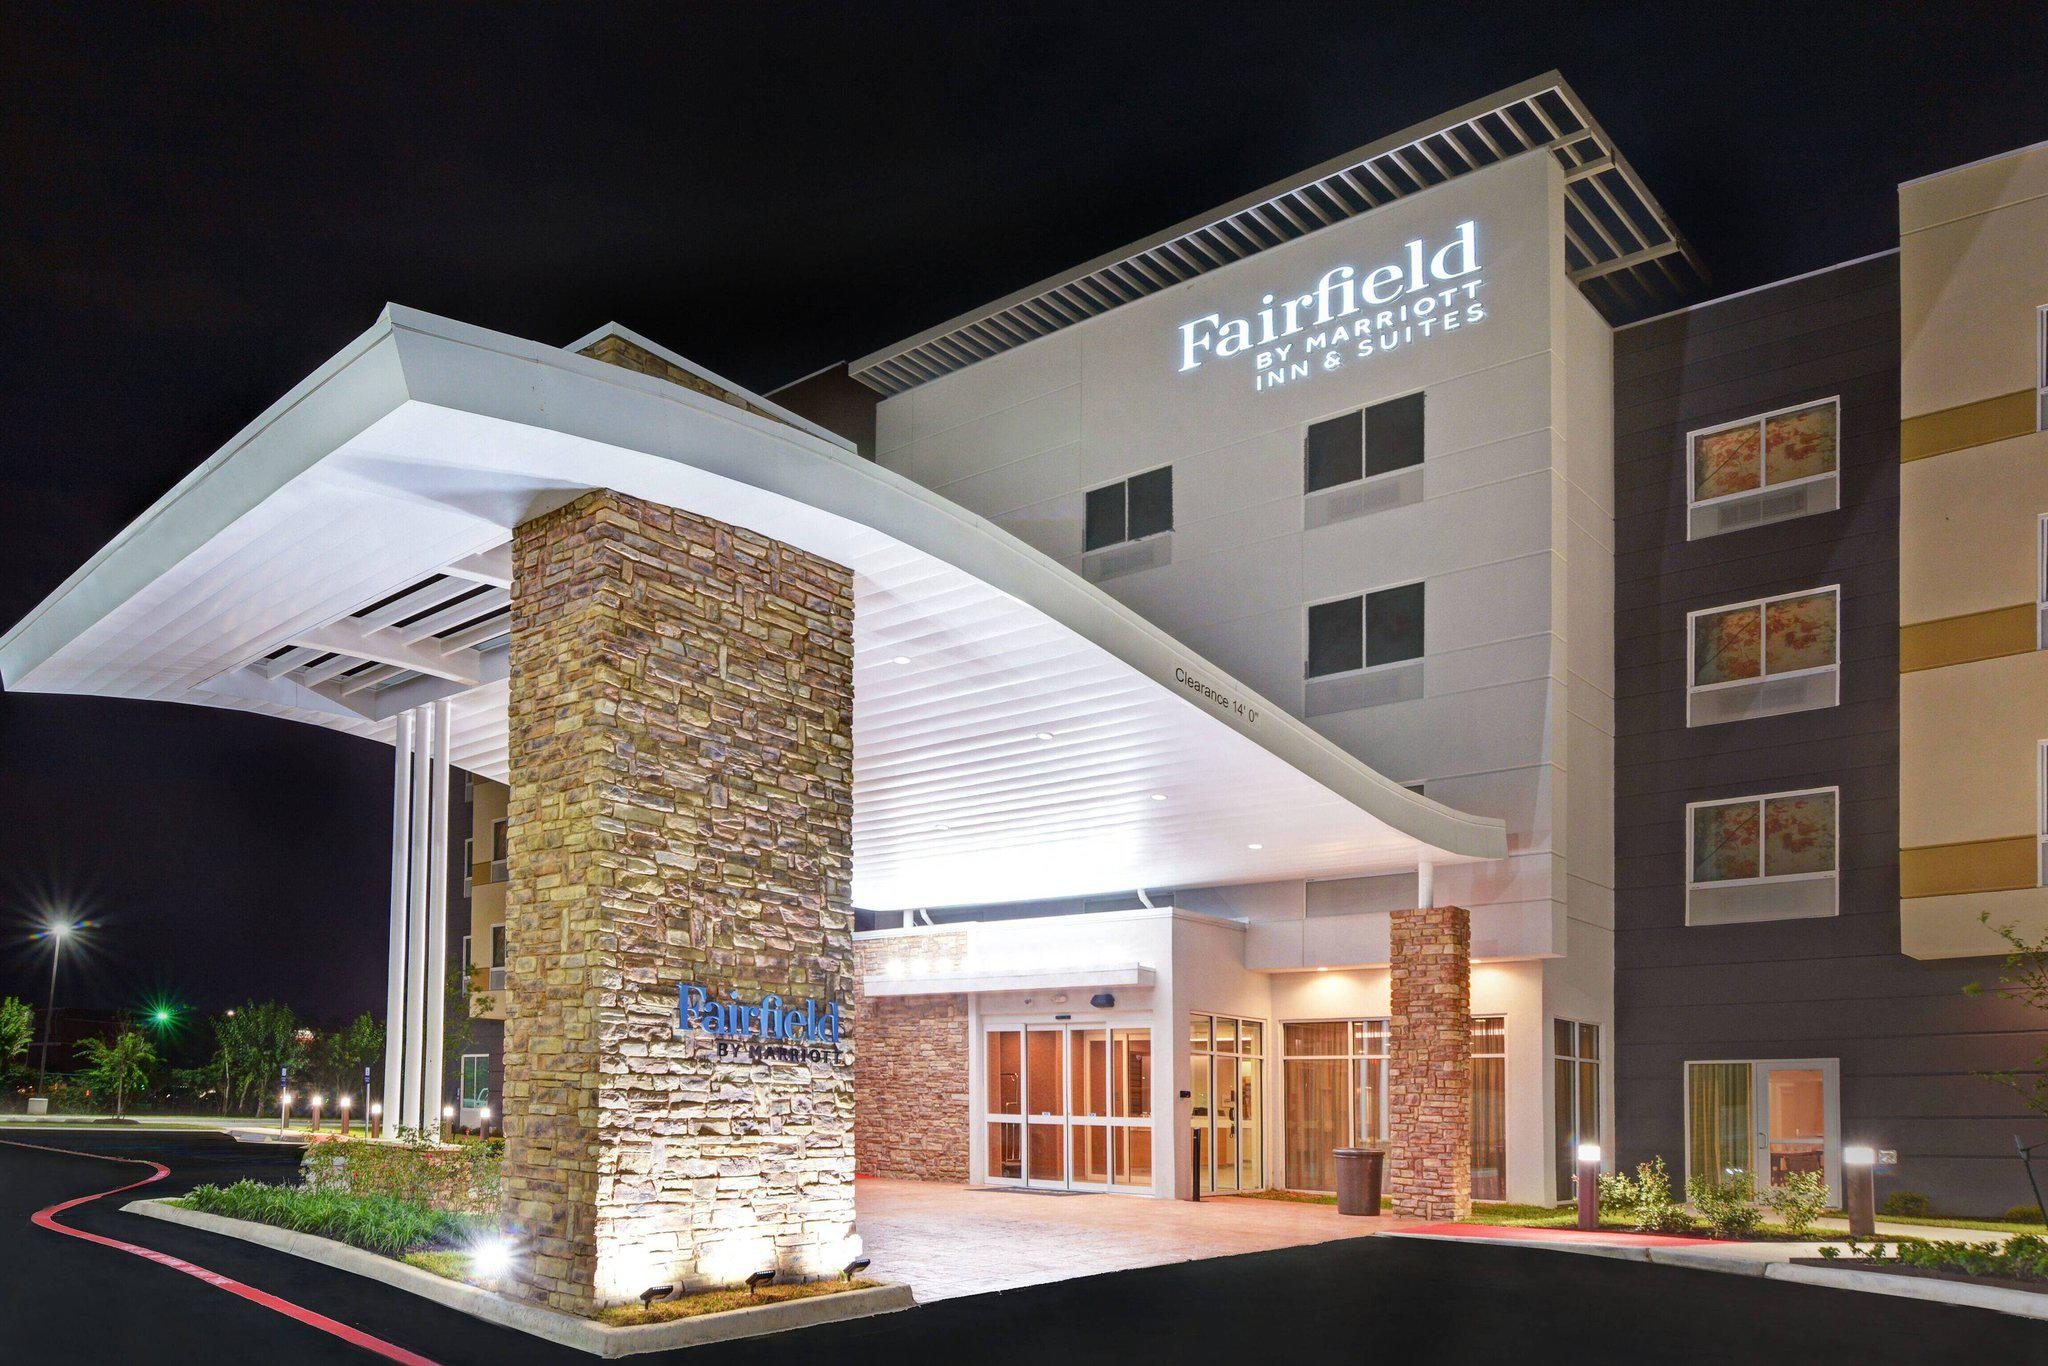 Fairfield Inn & Suites by Marriott Houston NASA/Webster